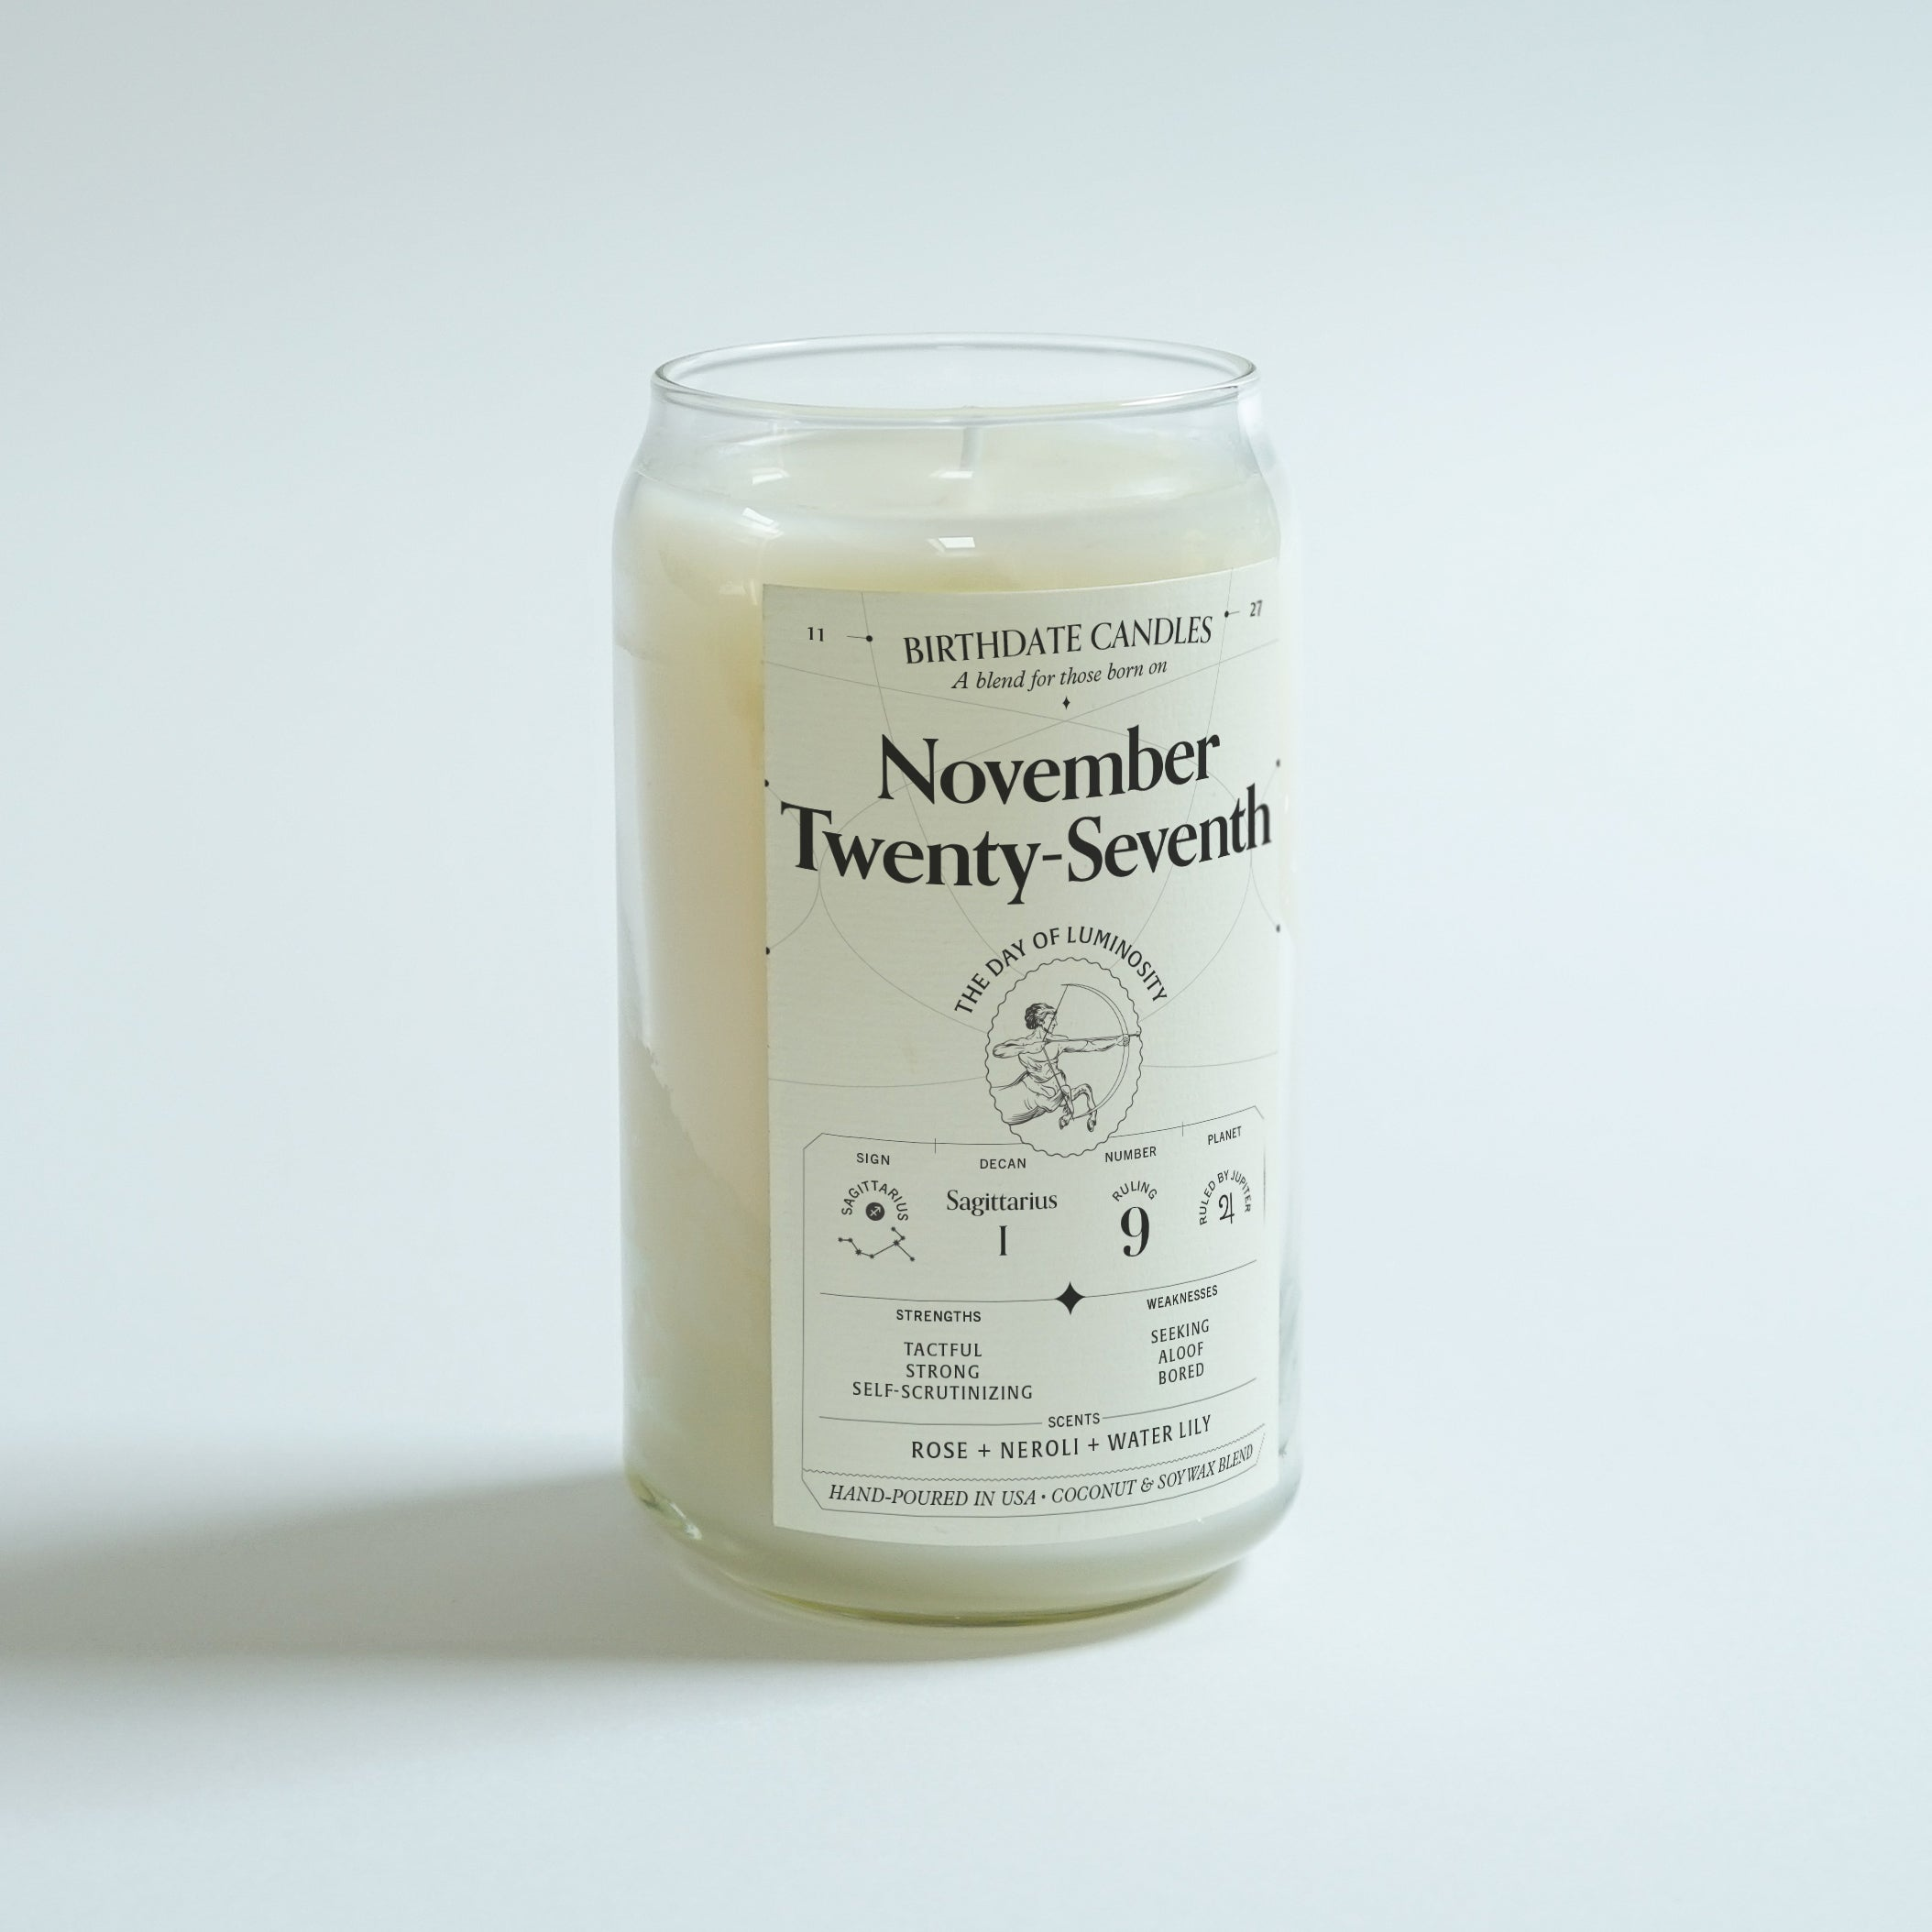 The November Twenty-Seventh Candle